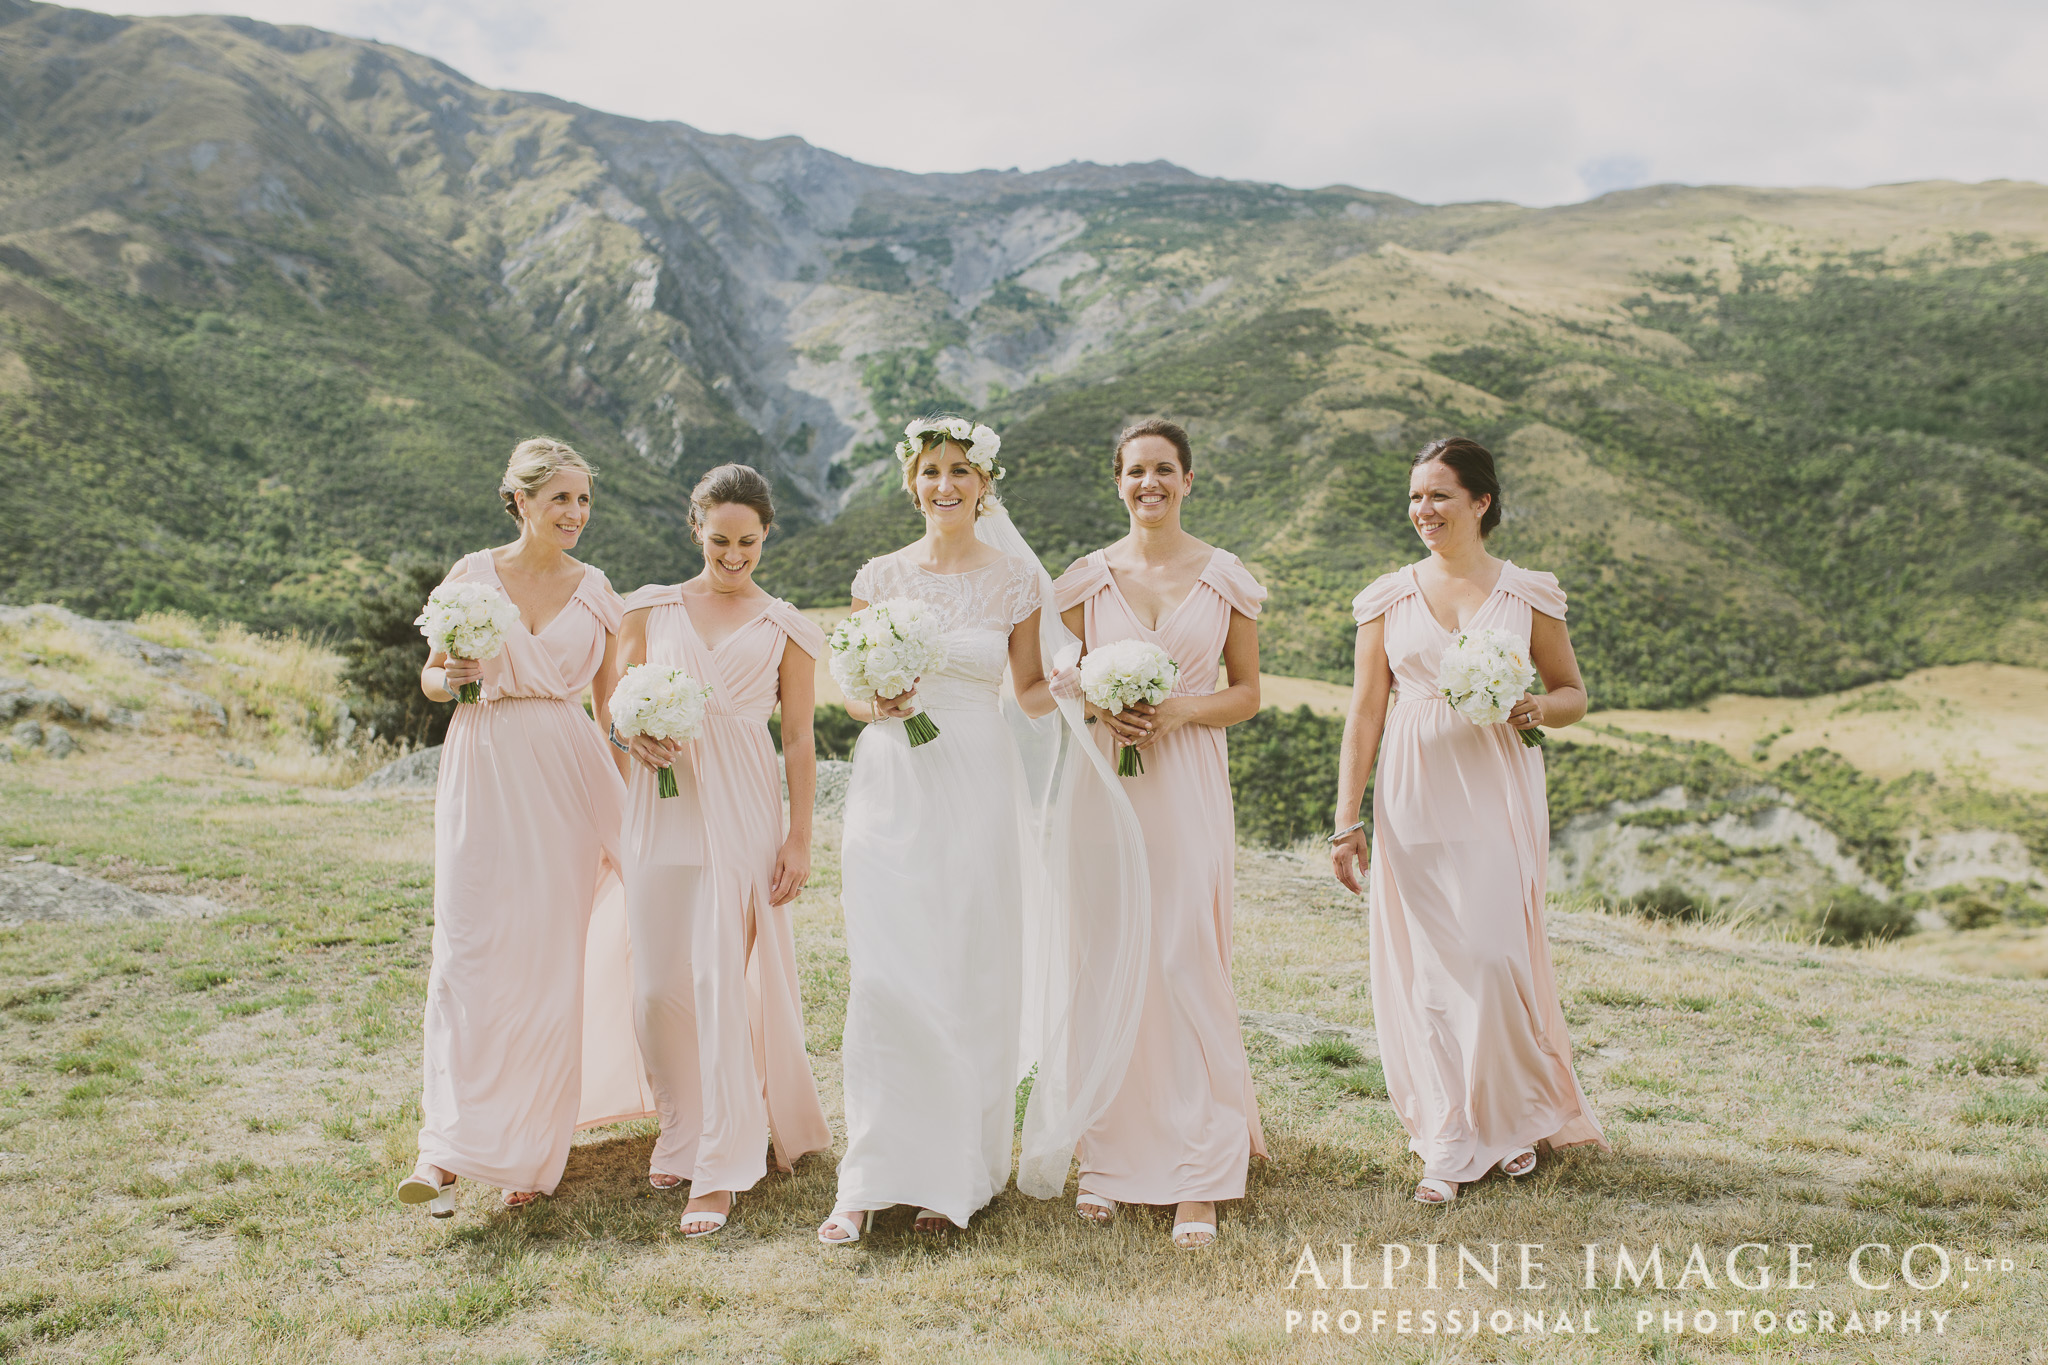 Claire + Nicks Stunning Peregrine Wedding